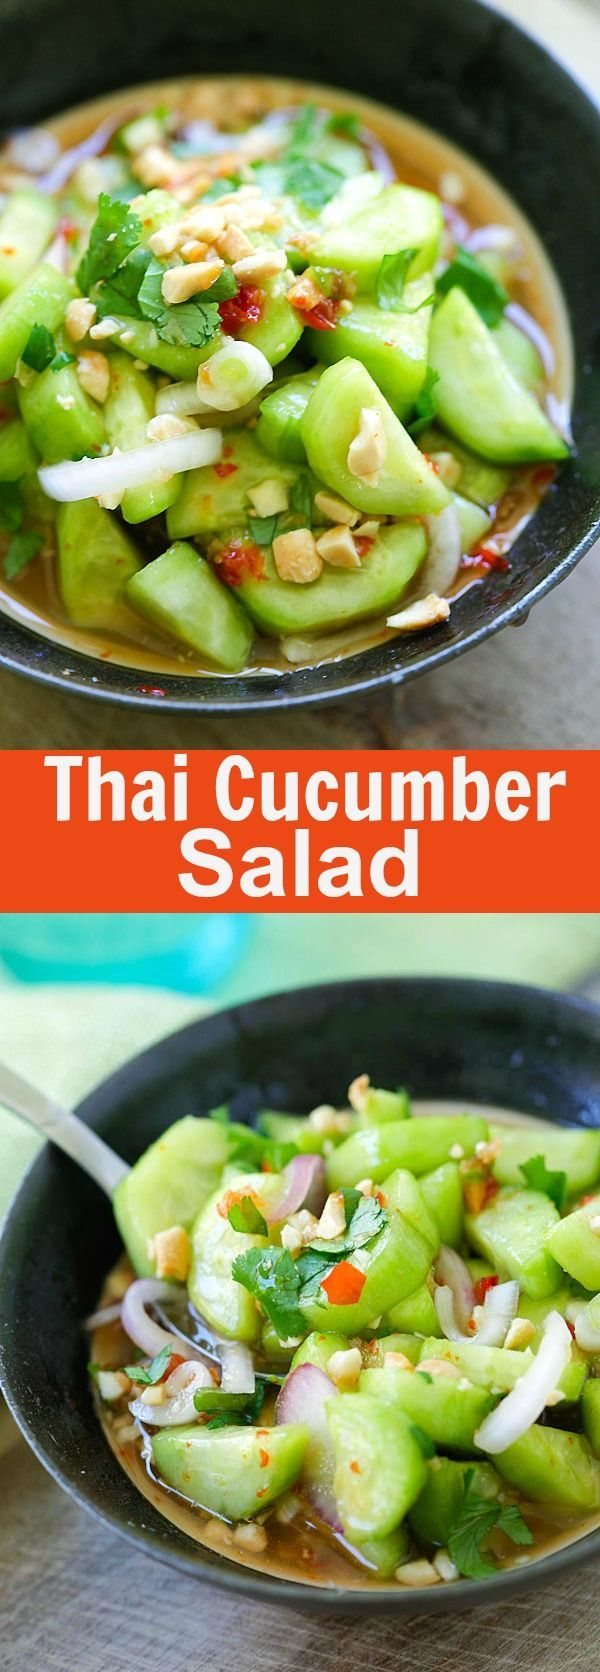 Thai Cucumber Salad - easiest and best homemade Thai cucumber salad recipe that is better than your favorite Thai restaurants, guaranteed